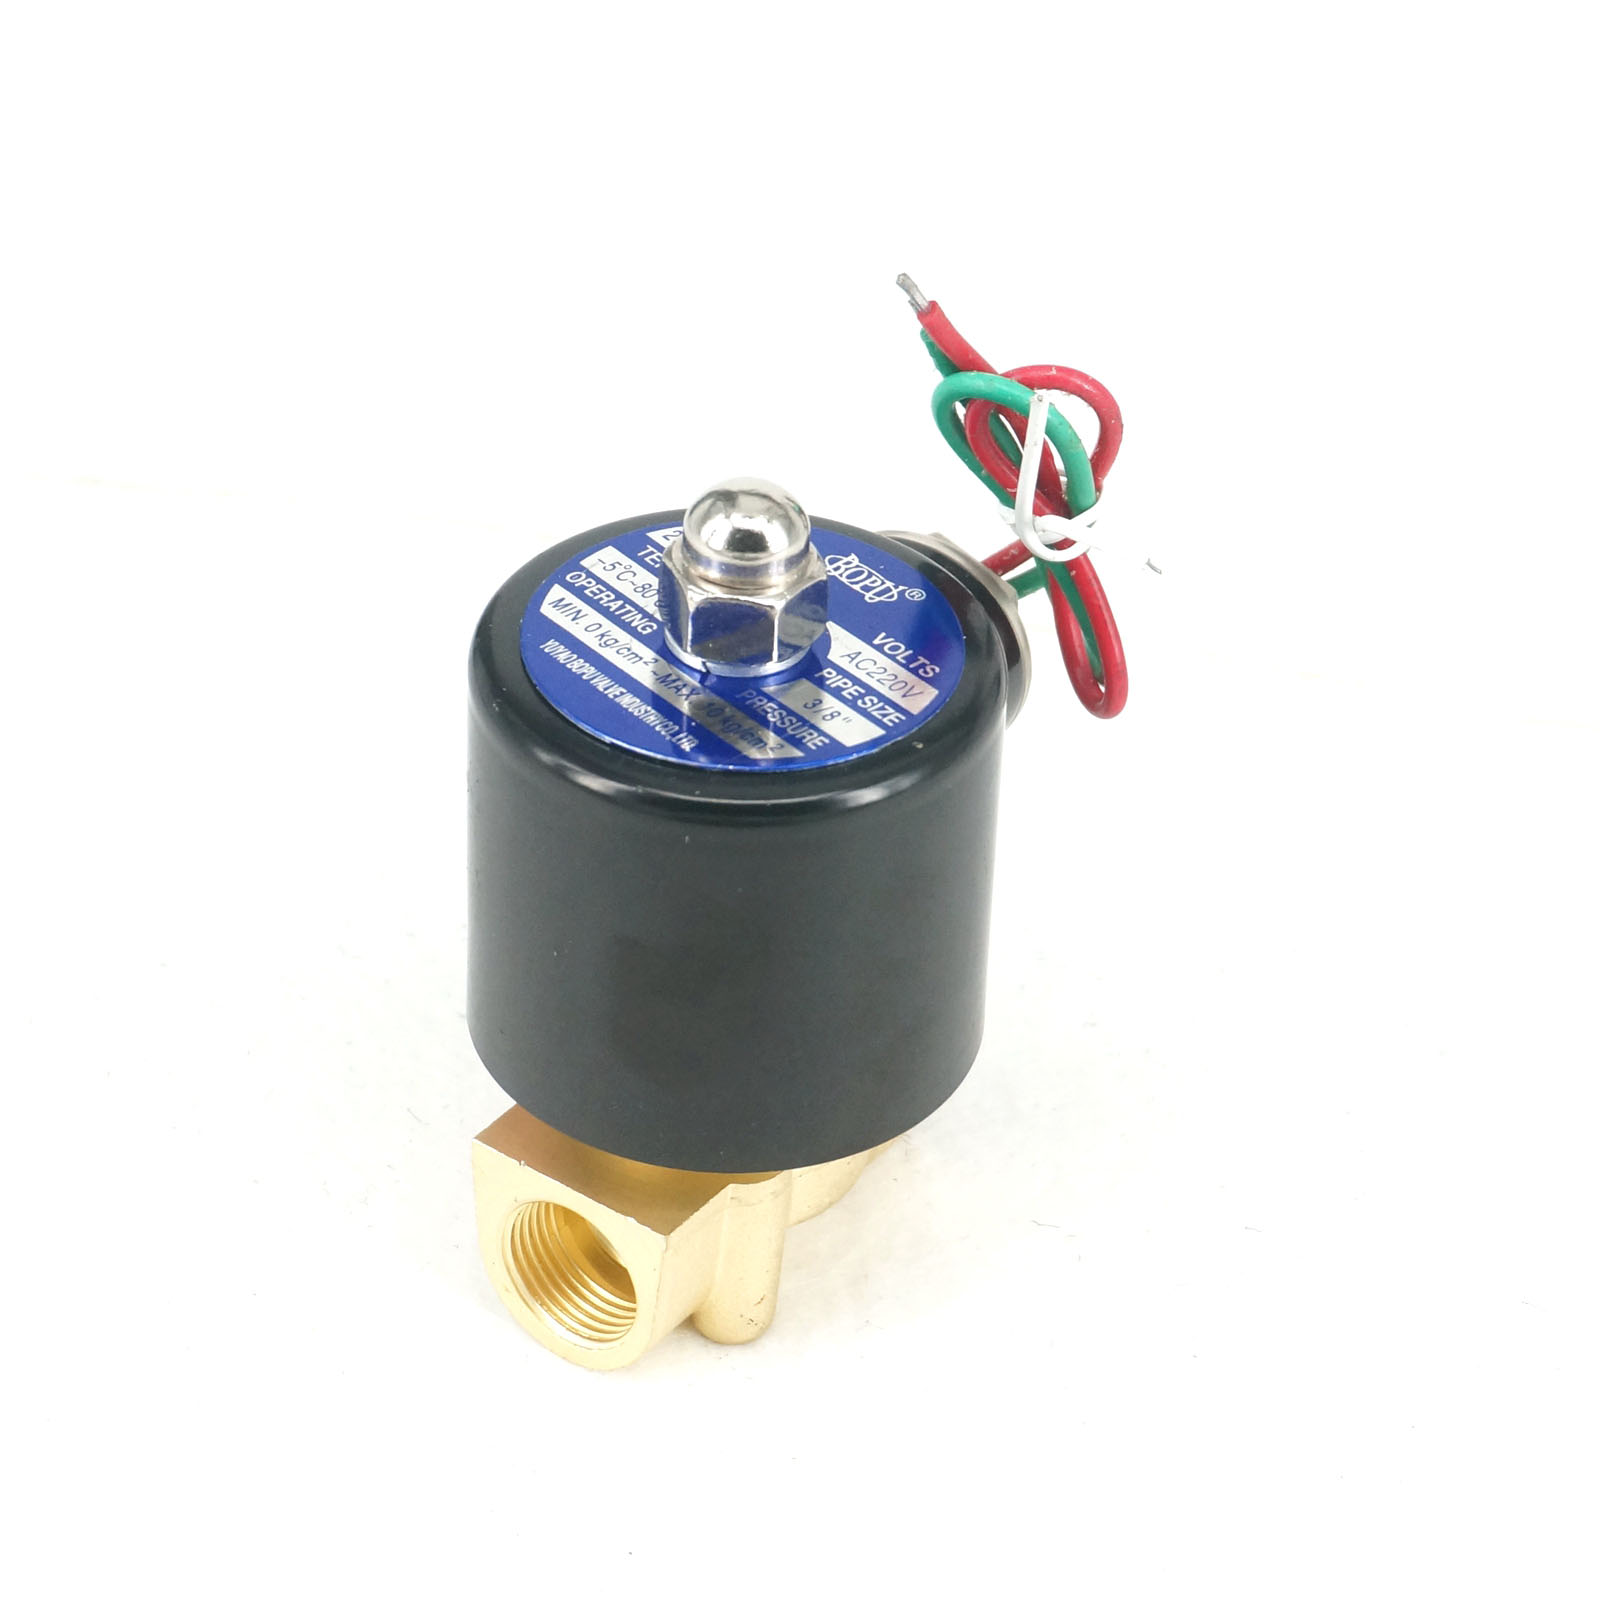 online buy whole 3 wire solenoid from 3 wire solenoid ac220v 2 way nc switch magnetic solenoid valve 3 8 bsp 2w 040